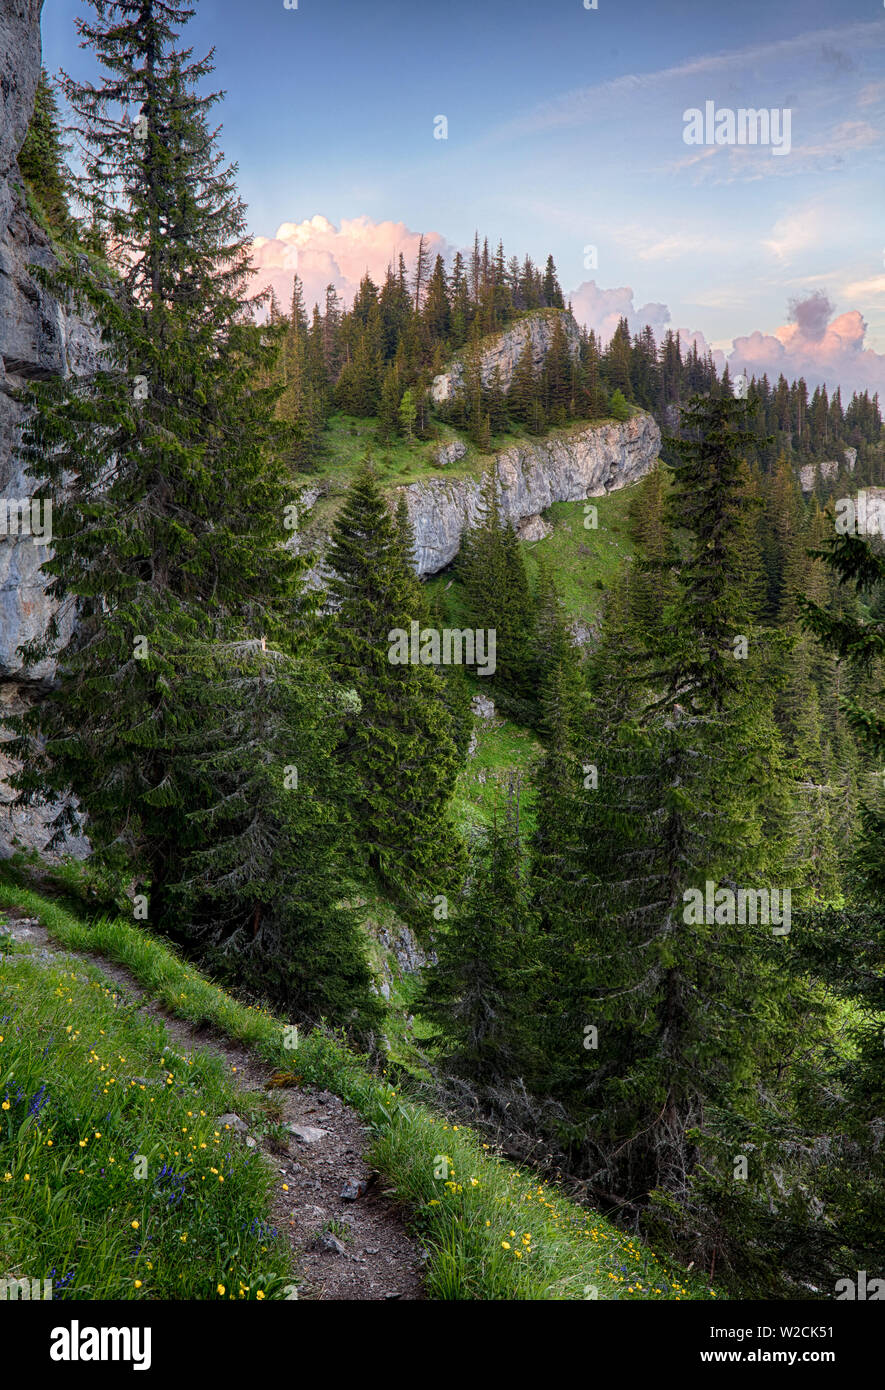 Mountain with rocks and forest - Ohniste, Low Tatras Stock Photo